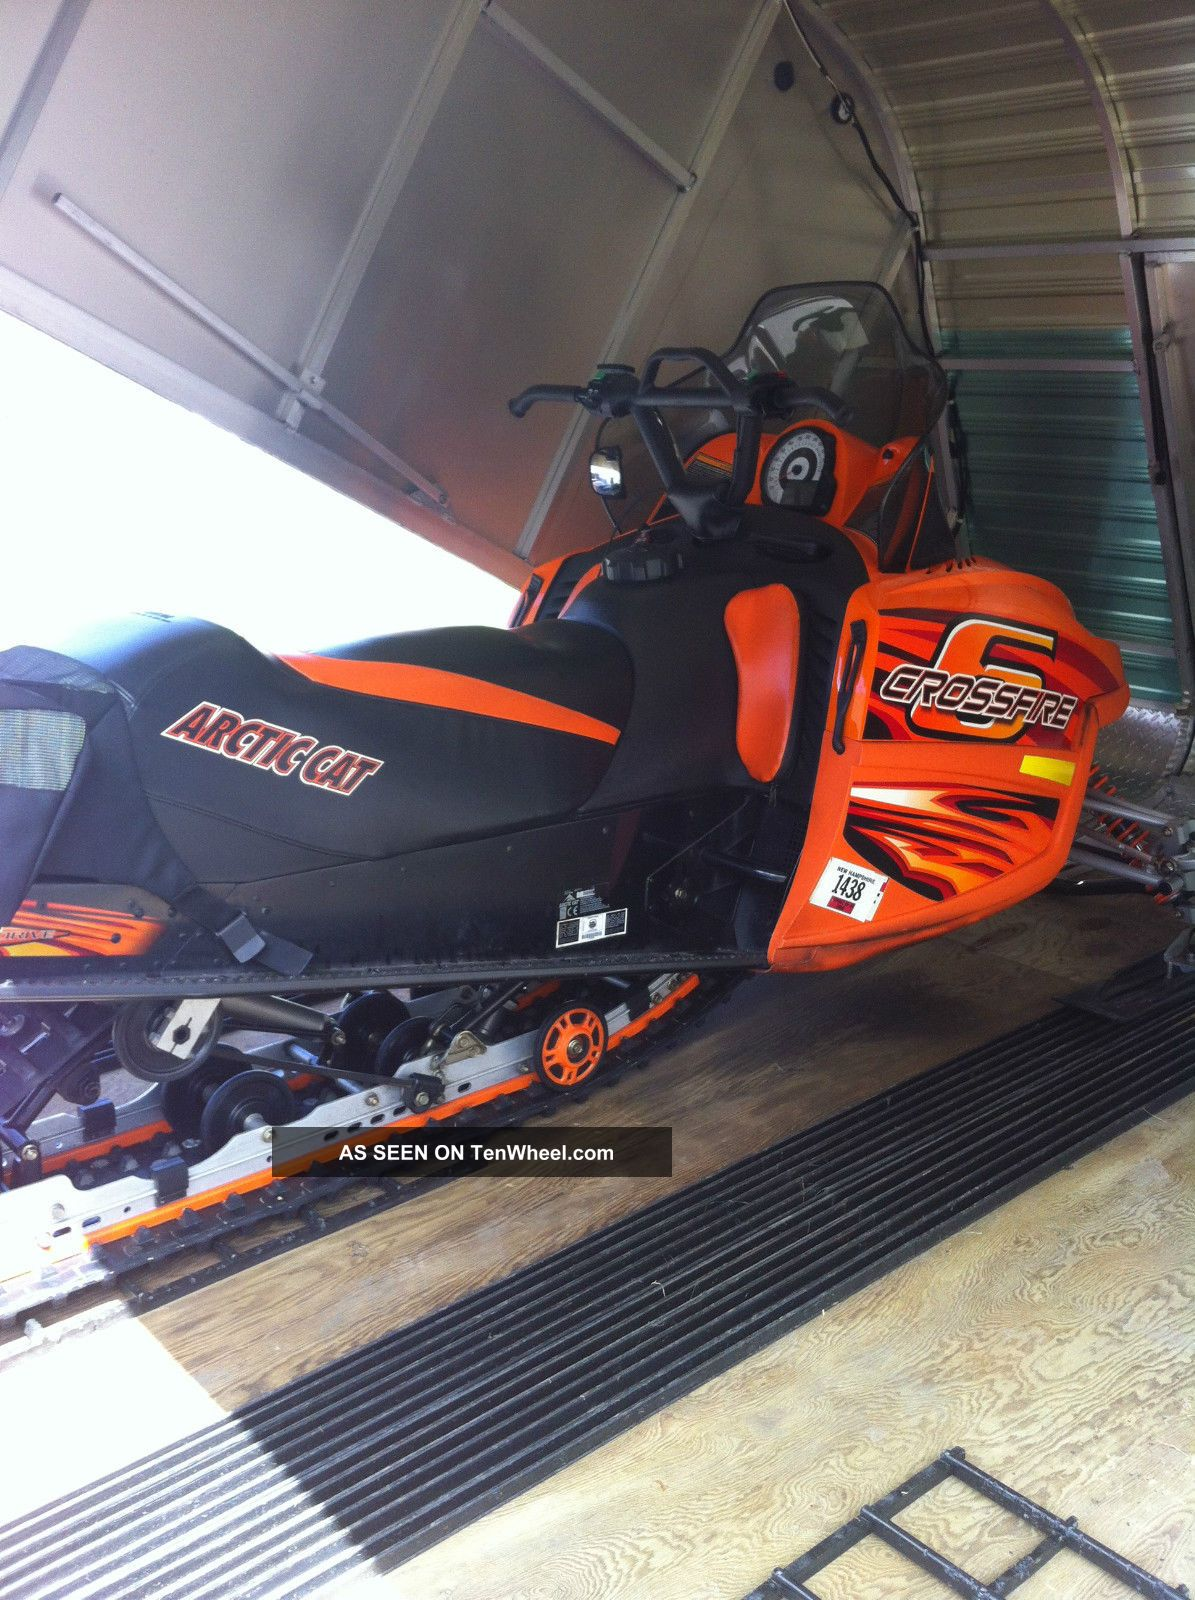 2006 Arctic Cat Crossfire 600 Efi Arctic Cat photo